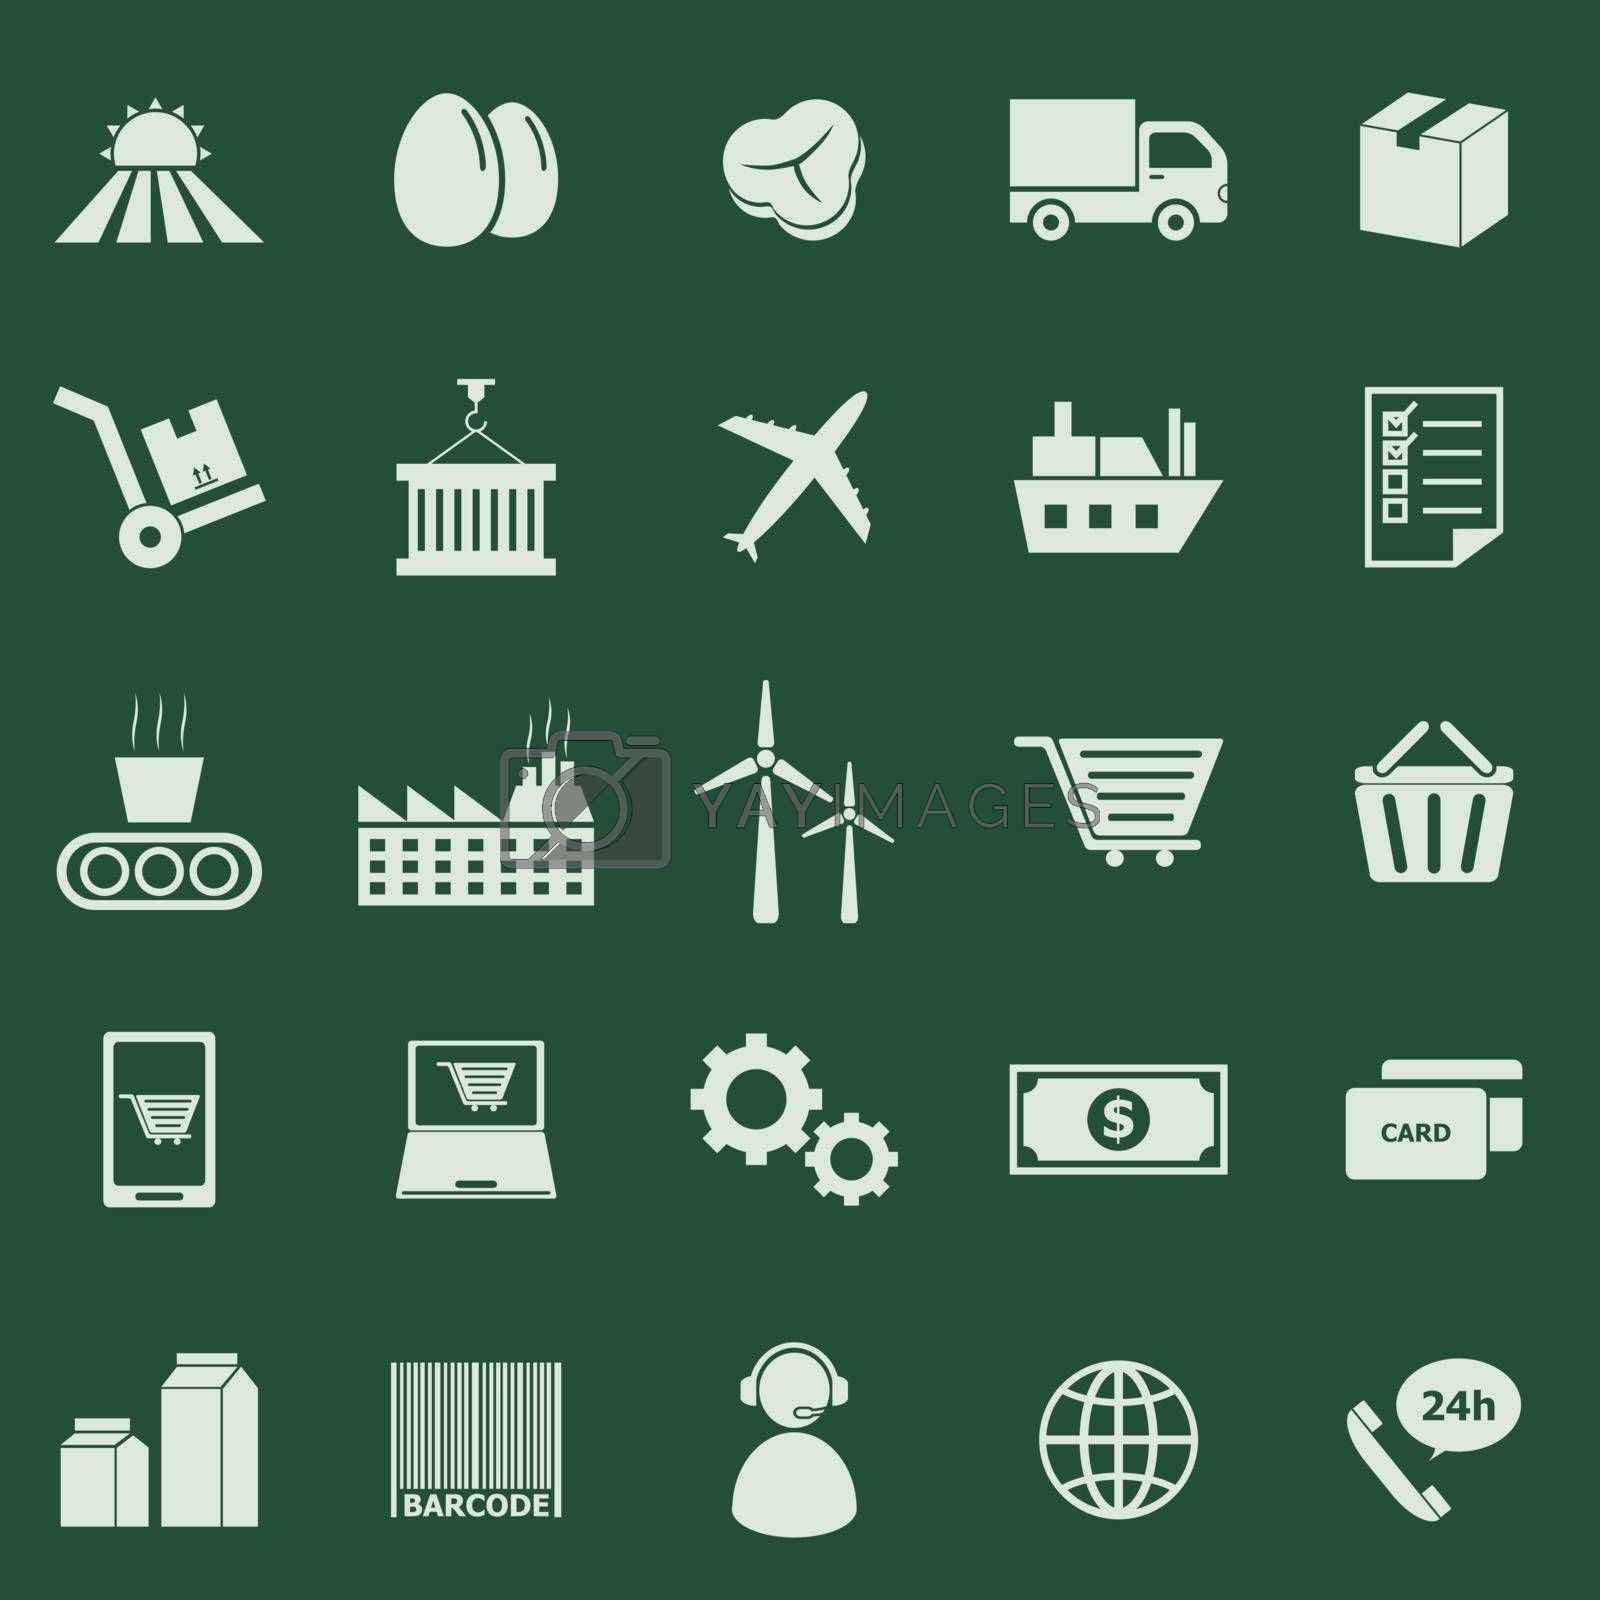 Supply chain color icons on green background, stock vector